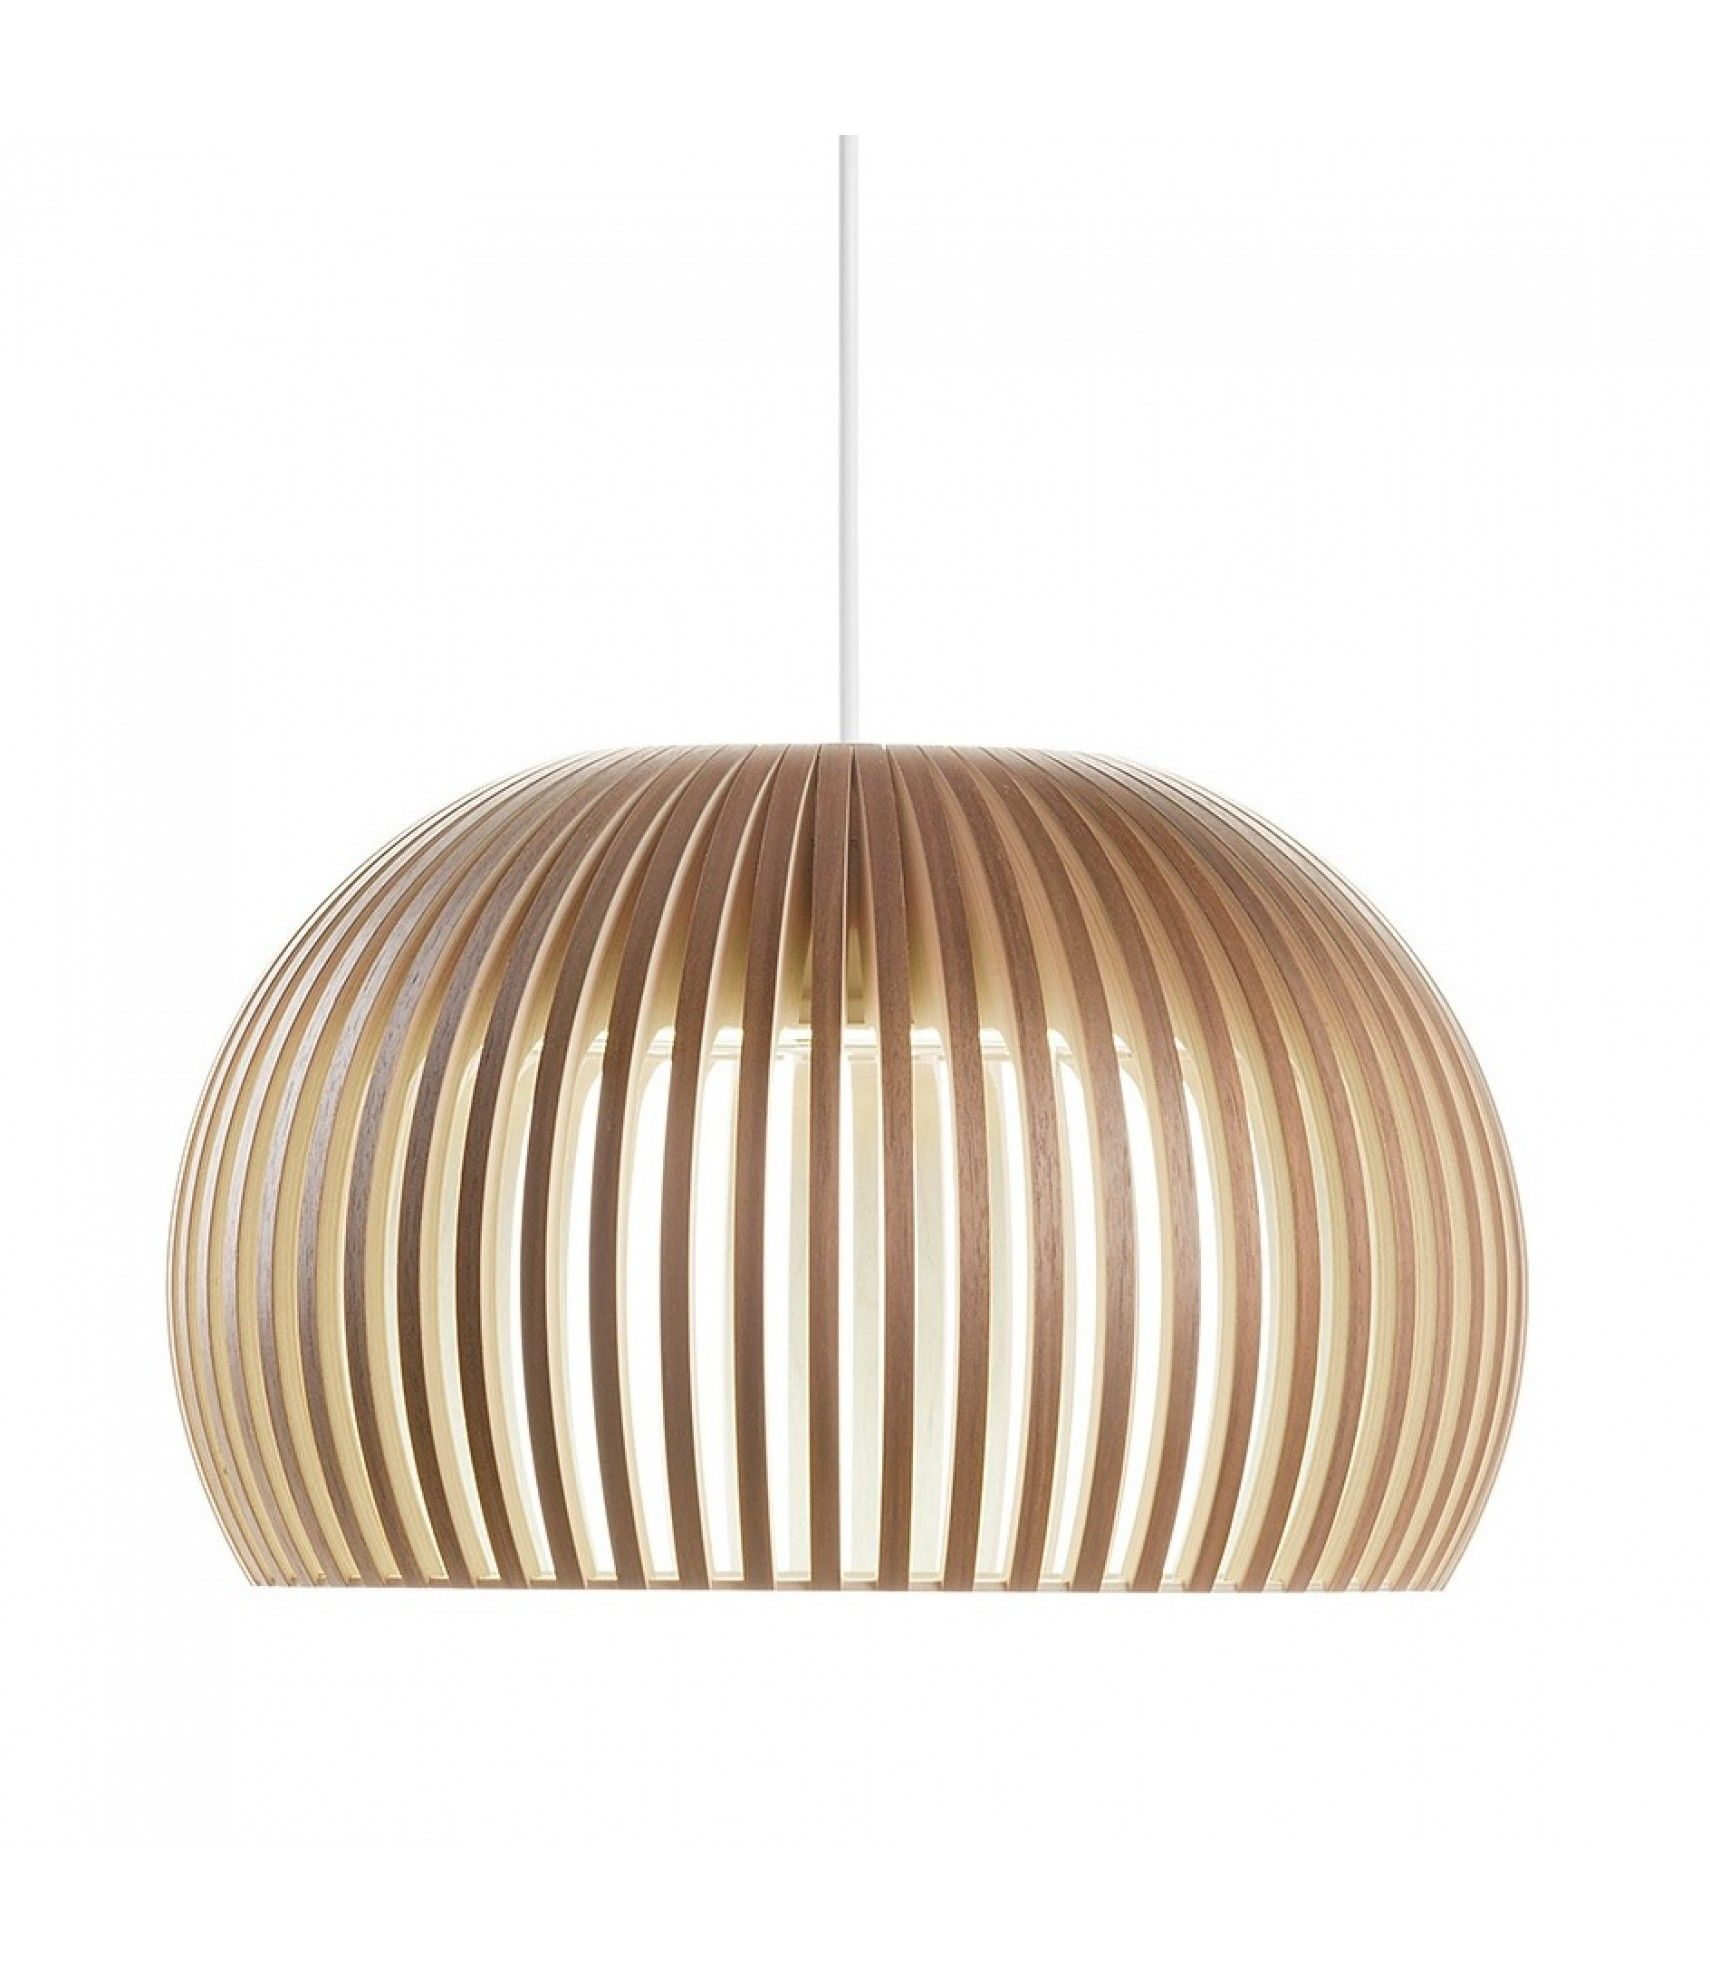 Replica wood atto 5000 pendant lamp premium version for my home replica wood atto 5000 pendant lamp premium version audiocablefo Light database